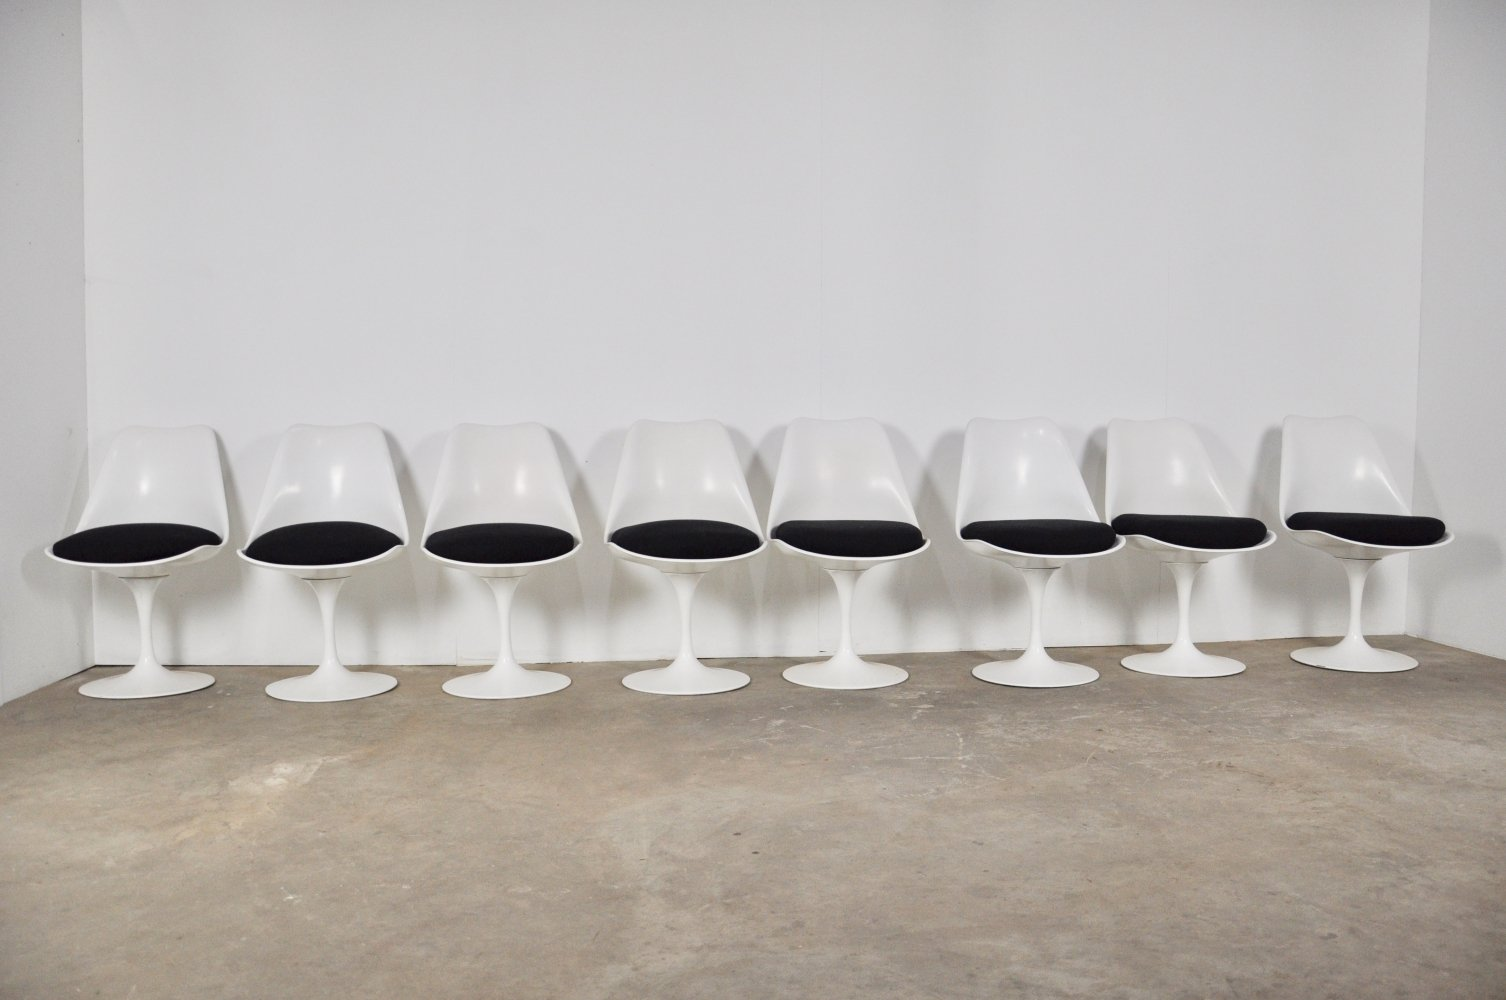 Set of 8 Tulip Chairs by Eero Saarinen for Knoll International, 1960s